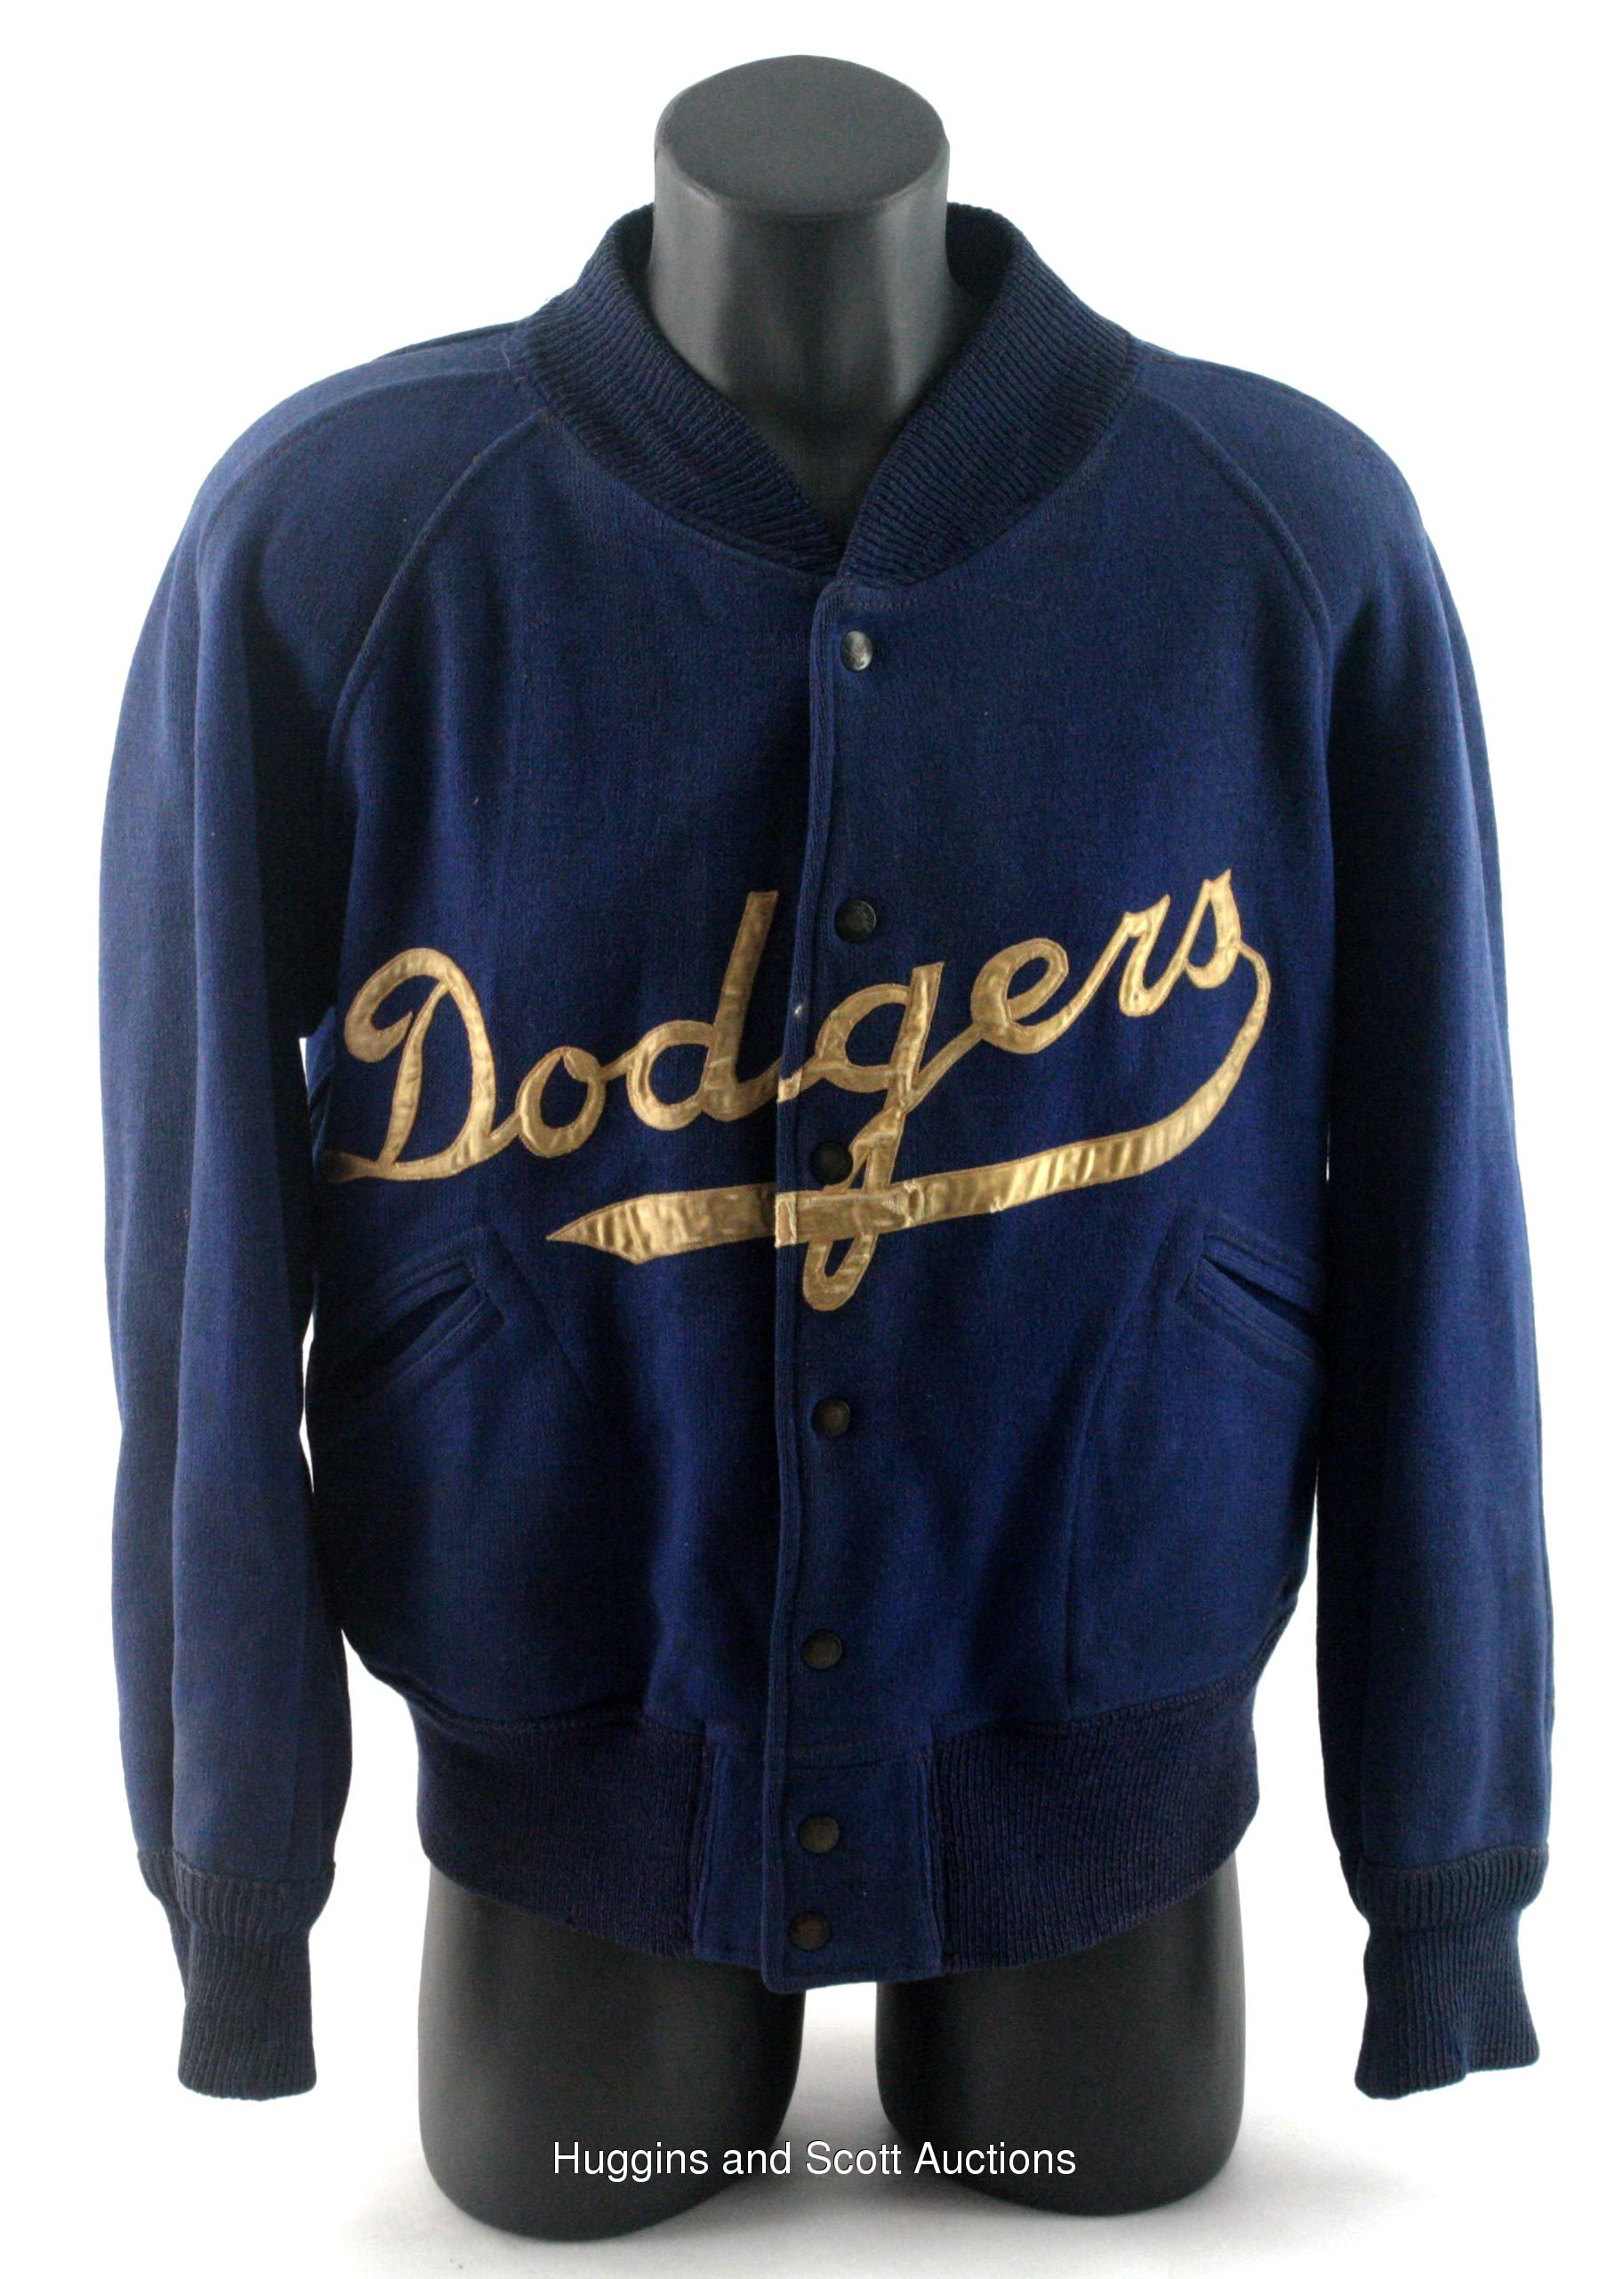 1940s 1950s Brooklyn Dodgers Game Worn Jacket